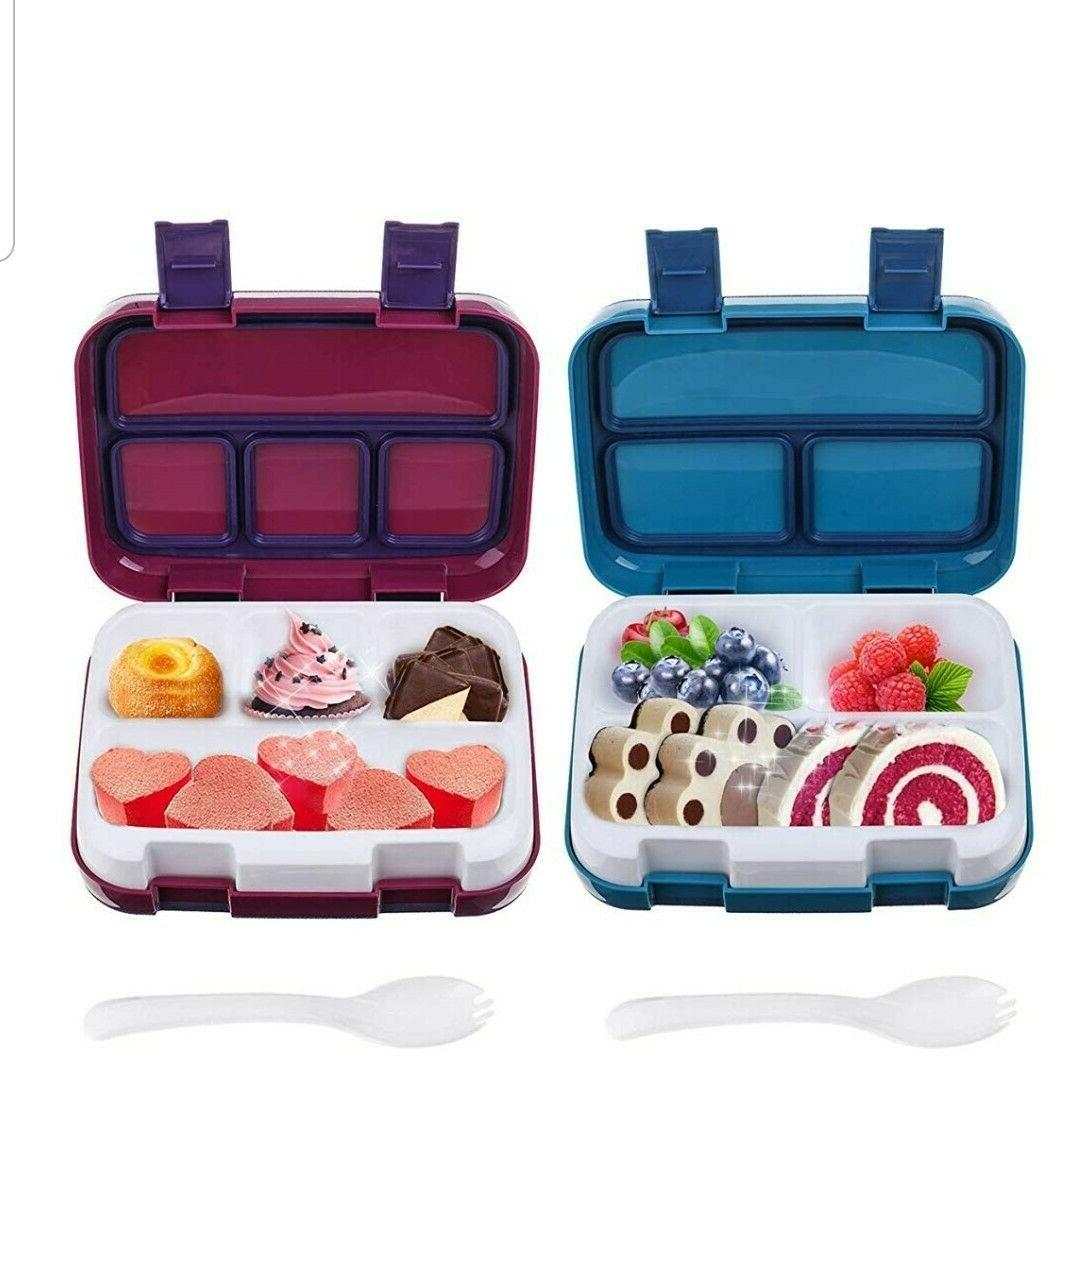 2 pack bento box lunch boxes bpa